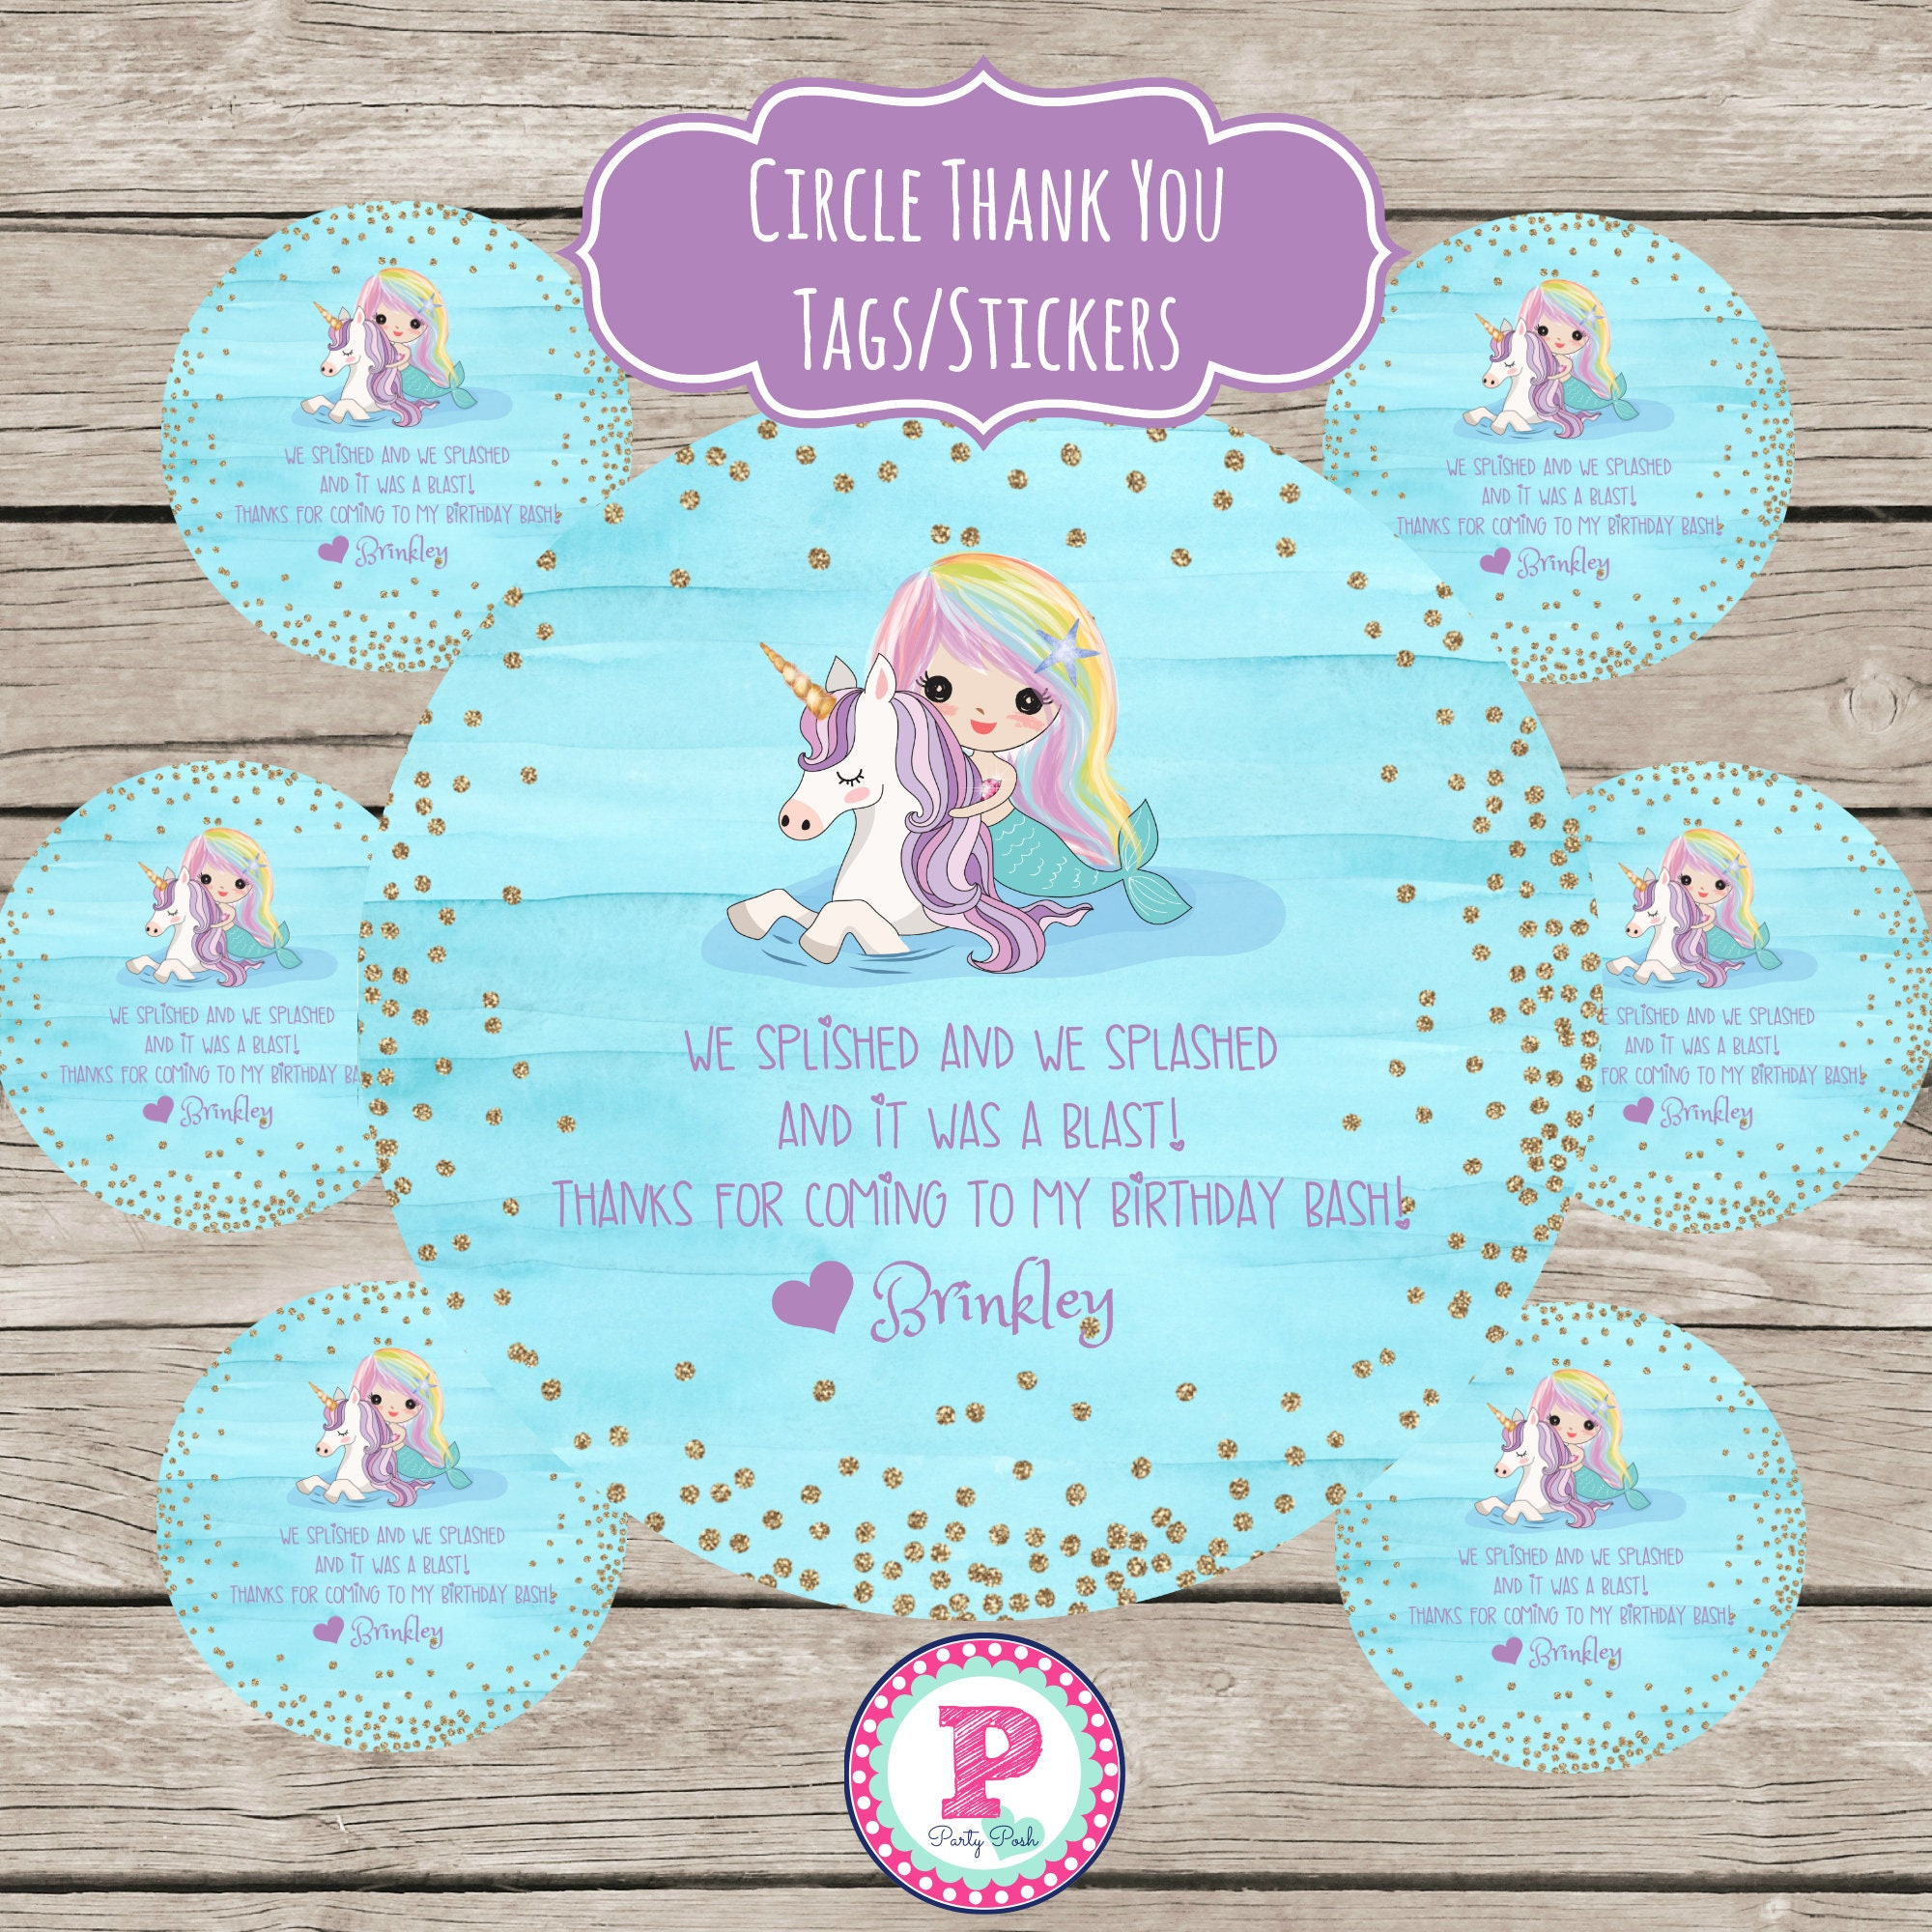 Mermaid Unicorn Birthday Party Thank You Tags Stickers